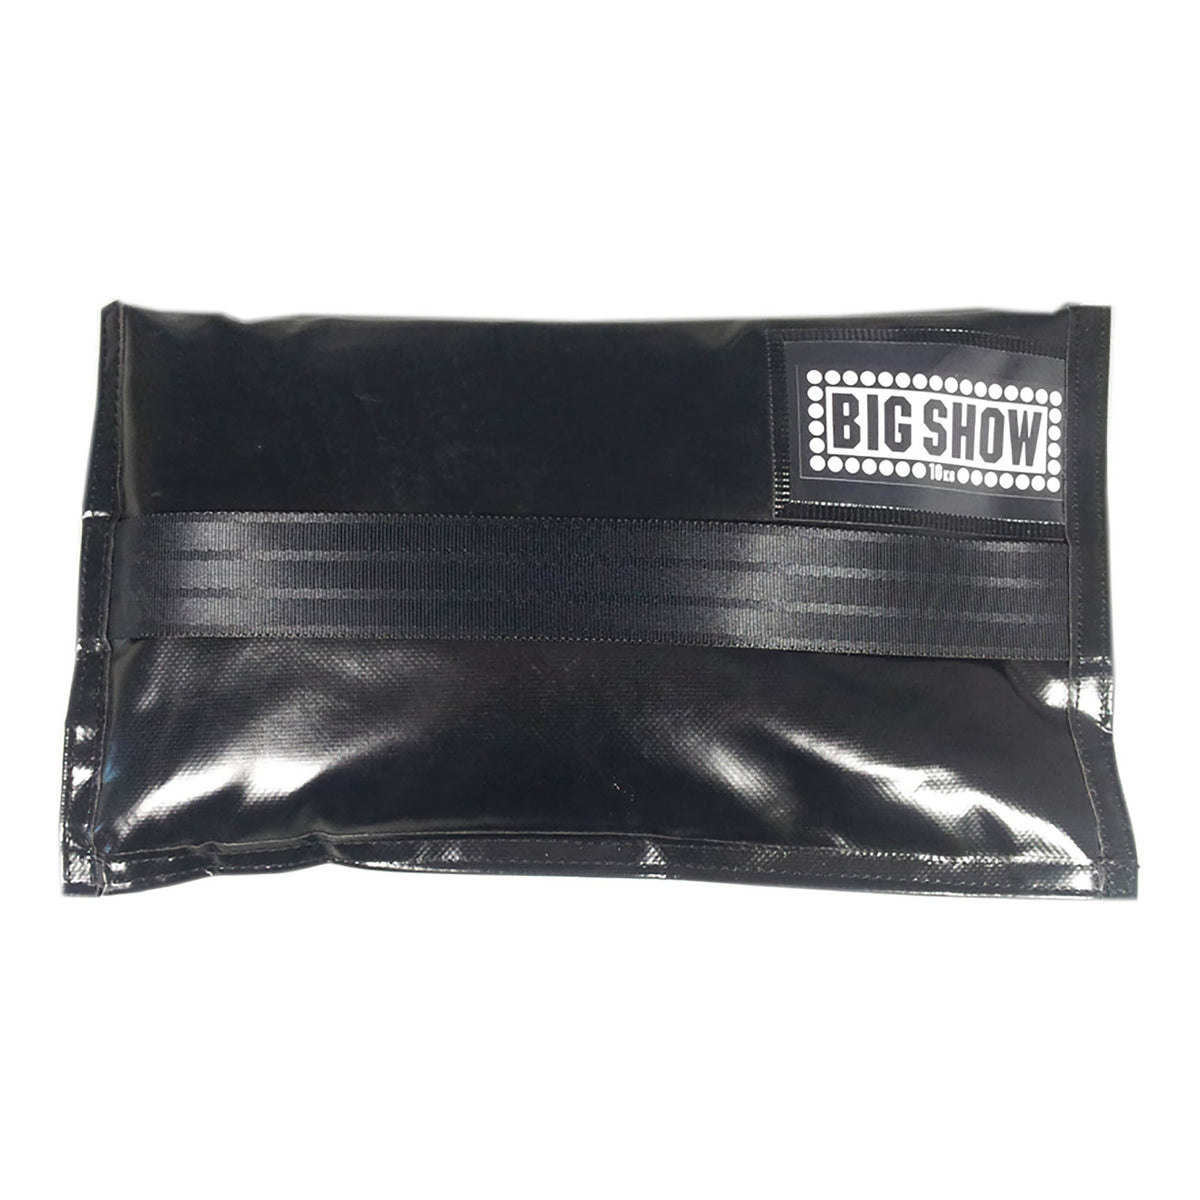 Big Show grip and lighting 10kg shot bag